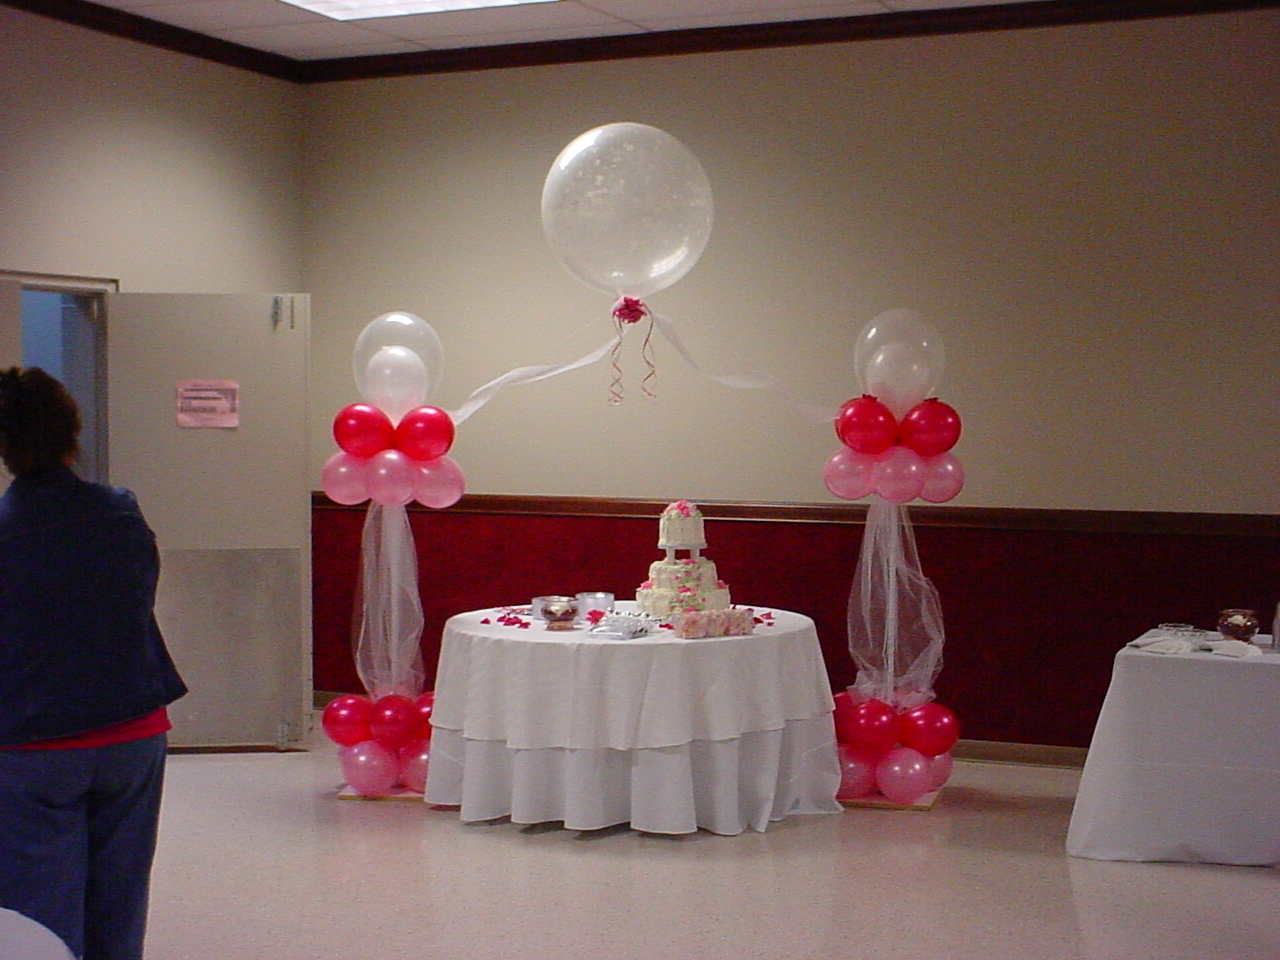 Balloon Decor Making Memories Kids Birthday Party Designers